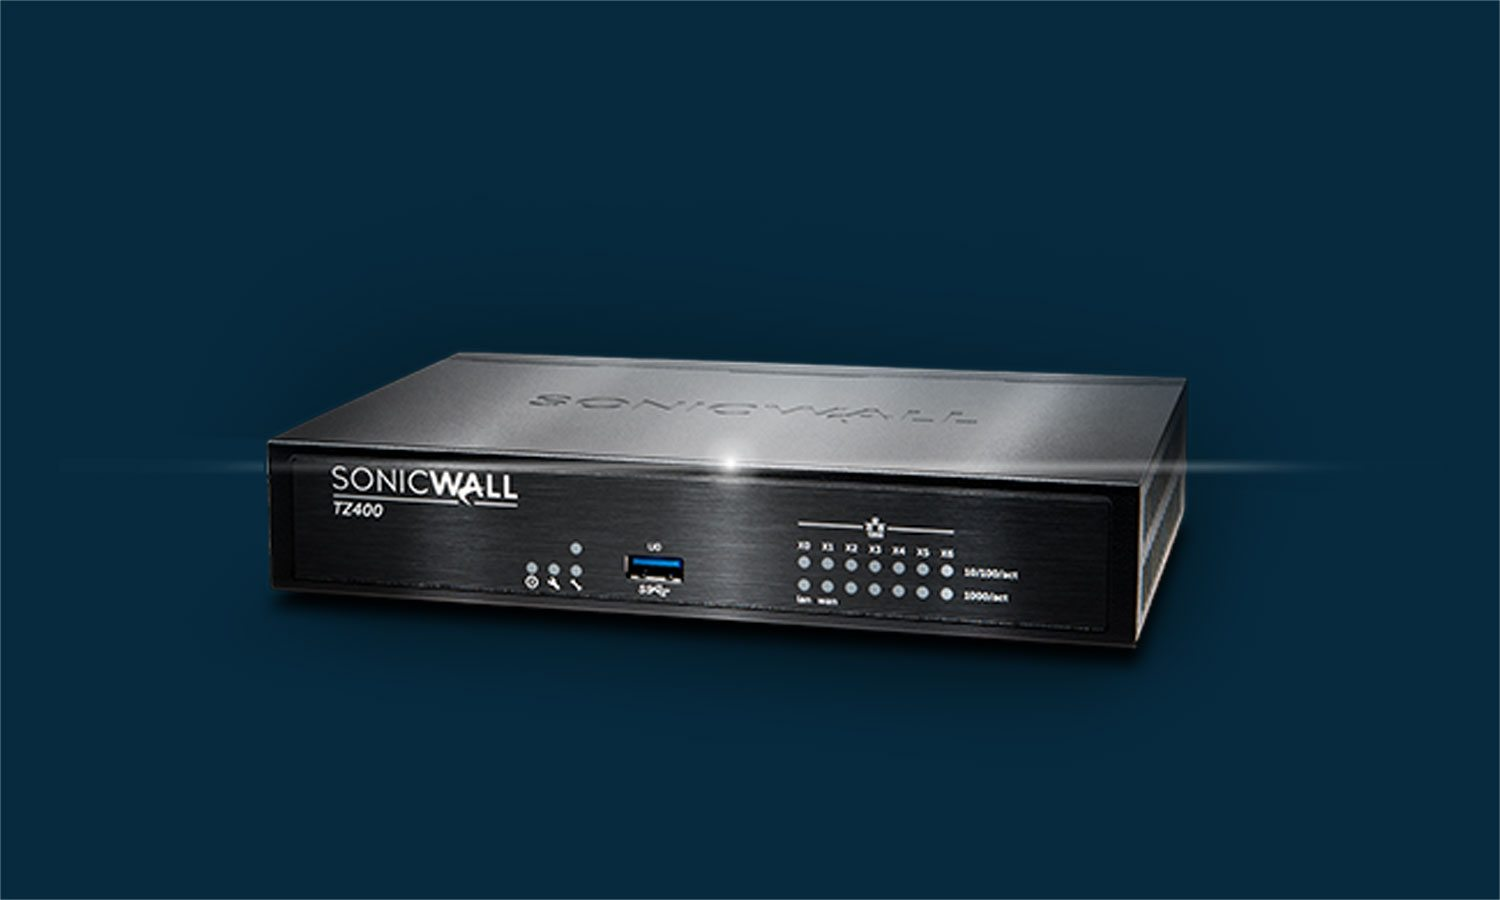 Sonicwall Security Services Dimension Systems Inc